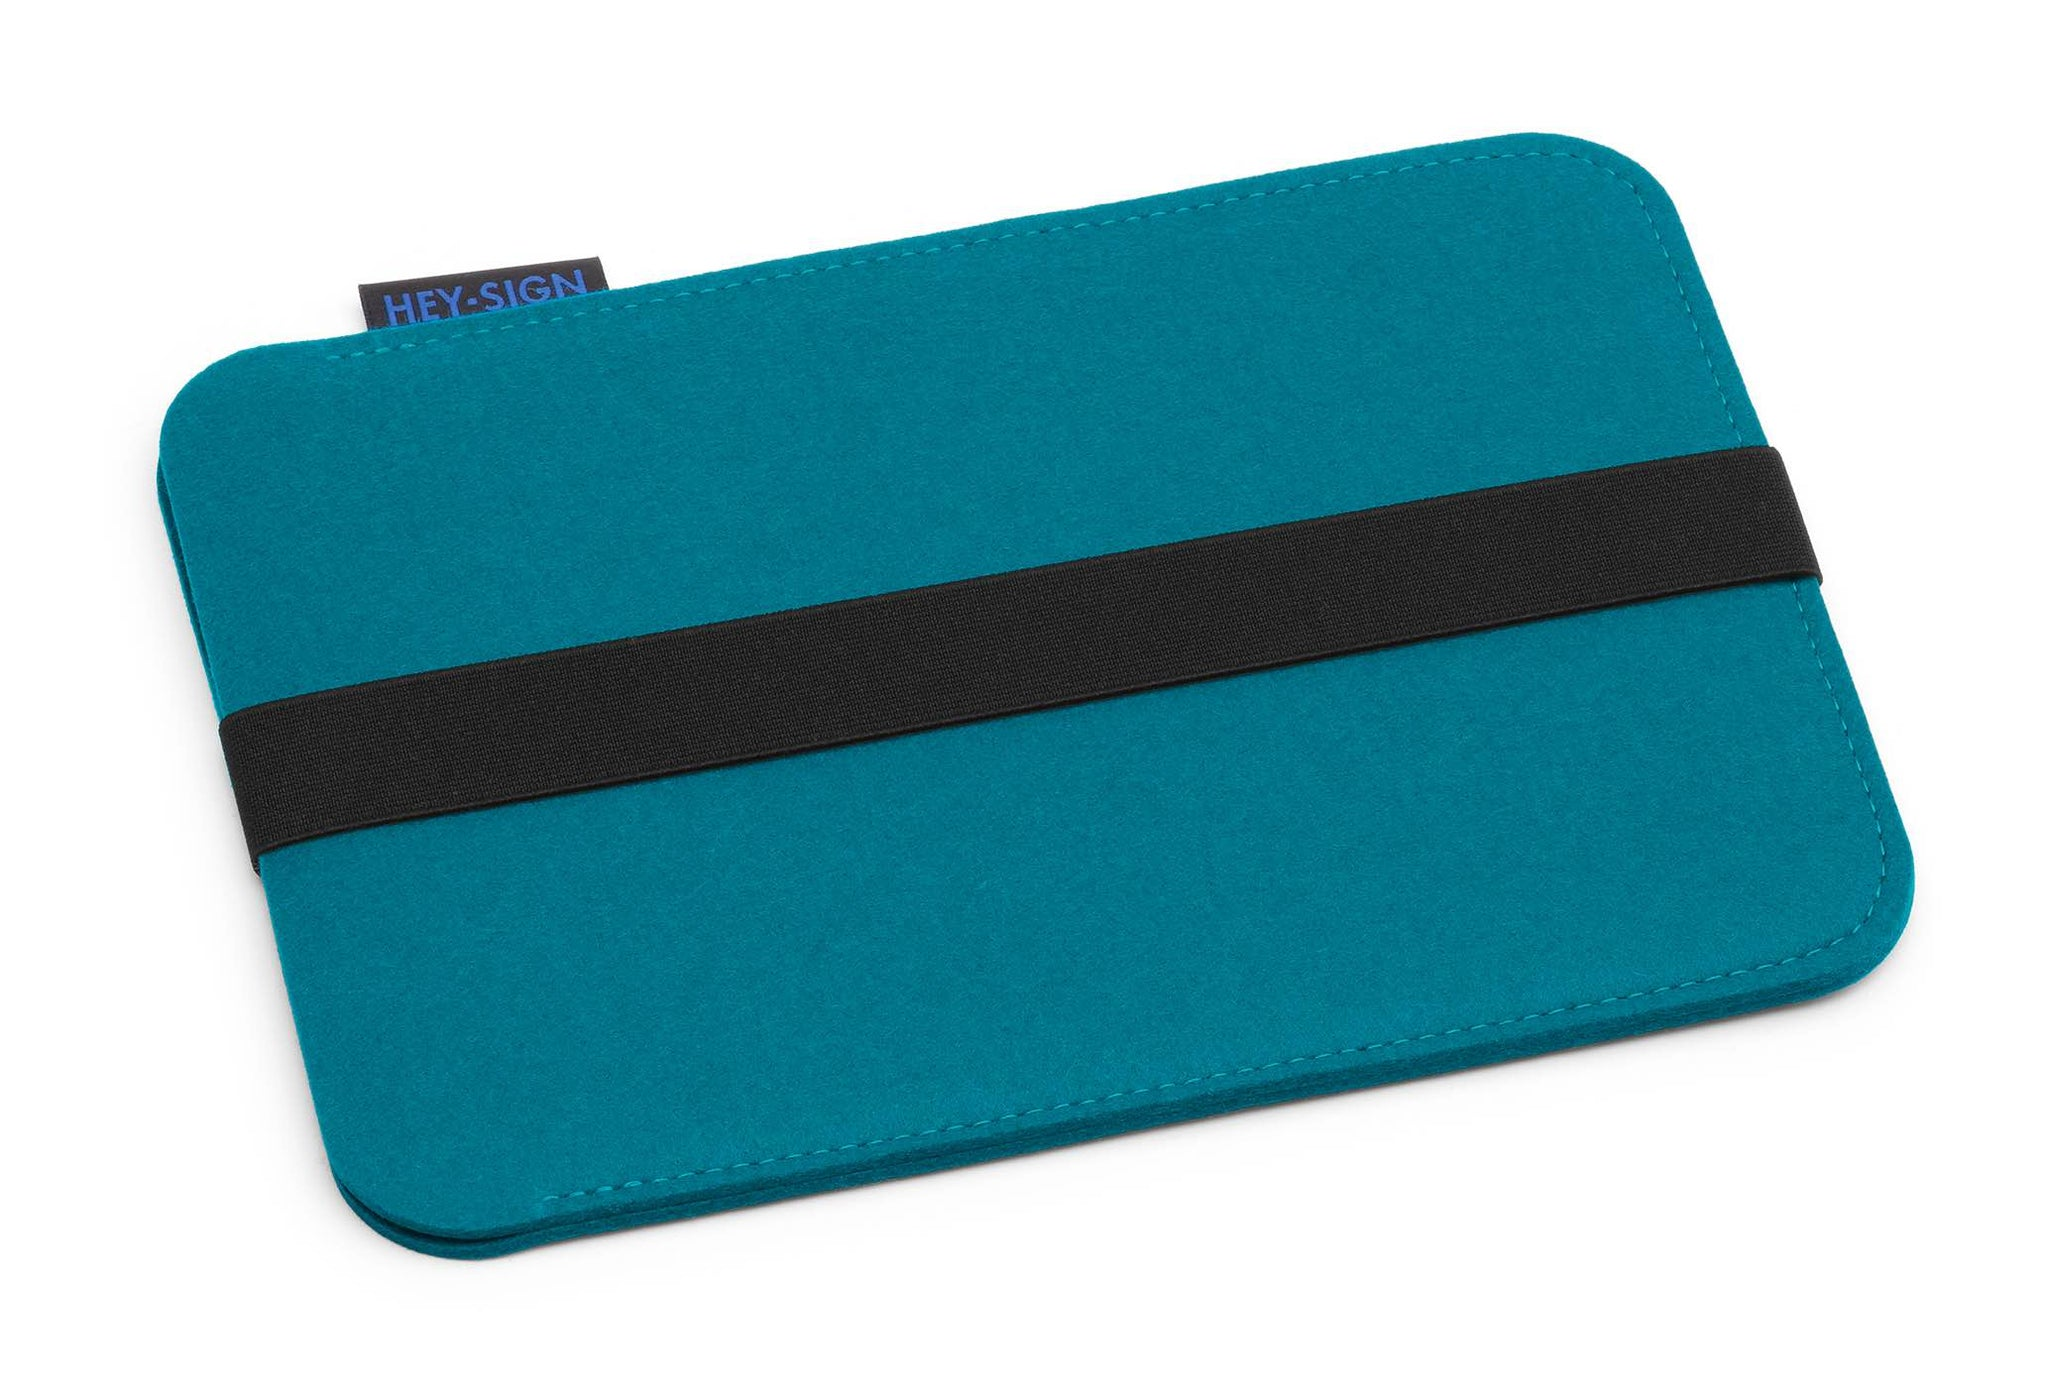 Felt iPad Air Sleeve | iPad Air & 9.7-inch - 10.5-inch iPad Pro